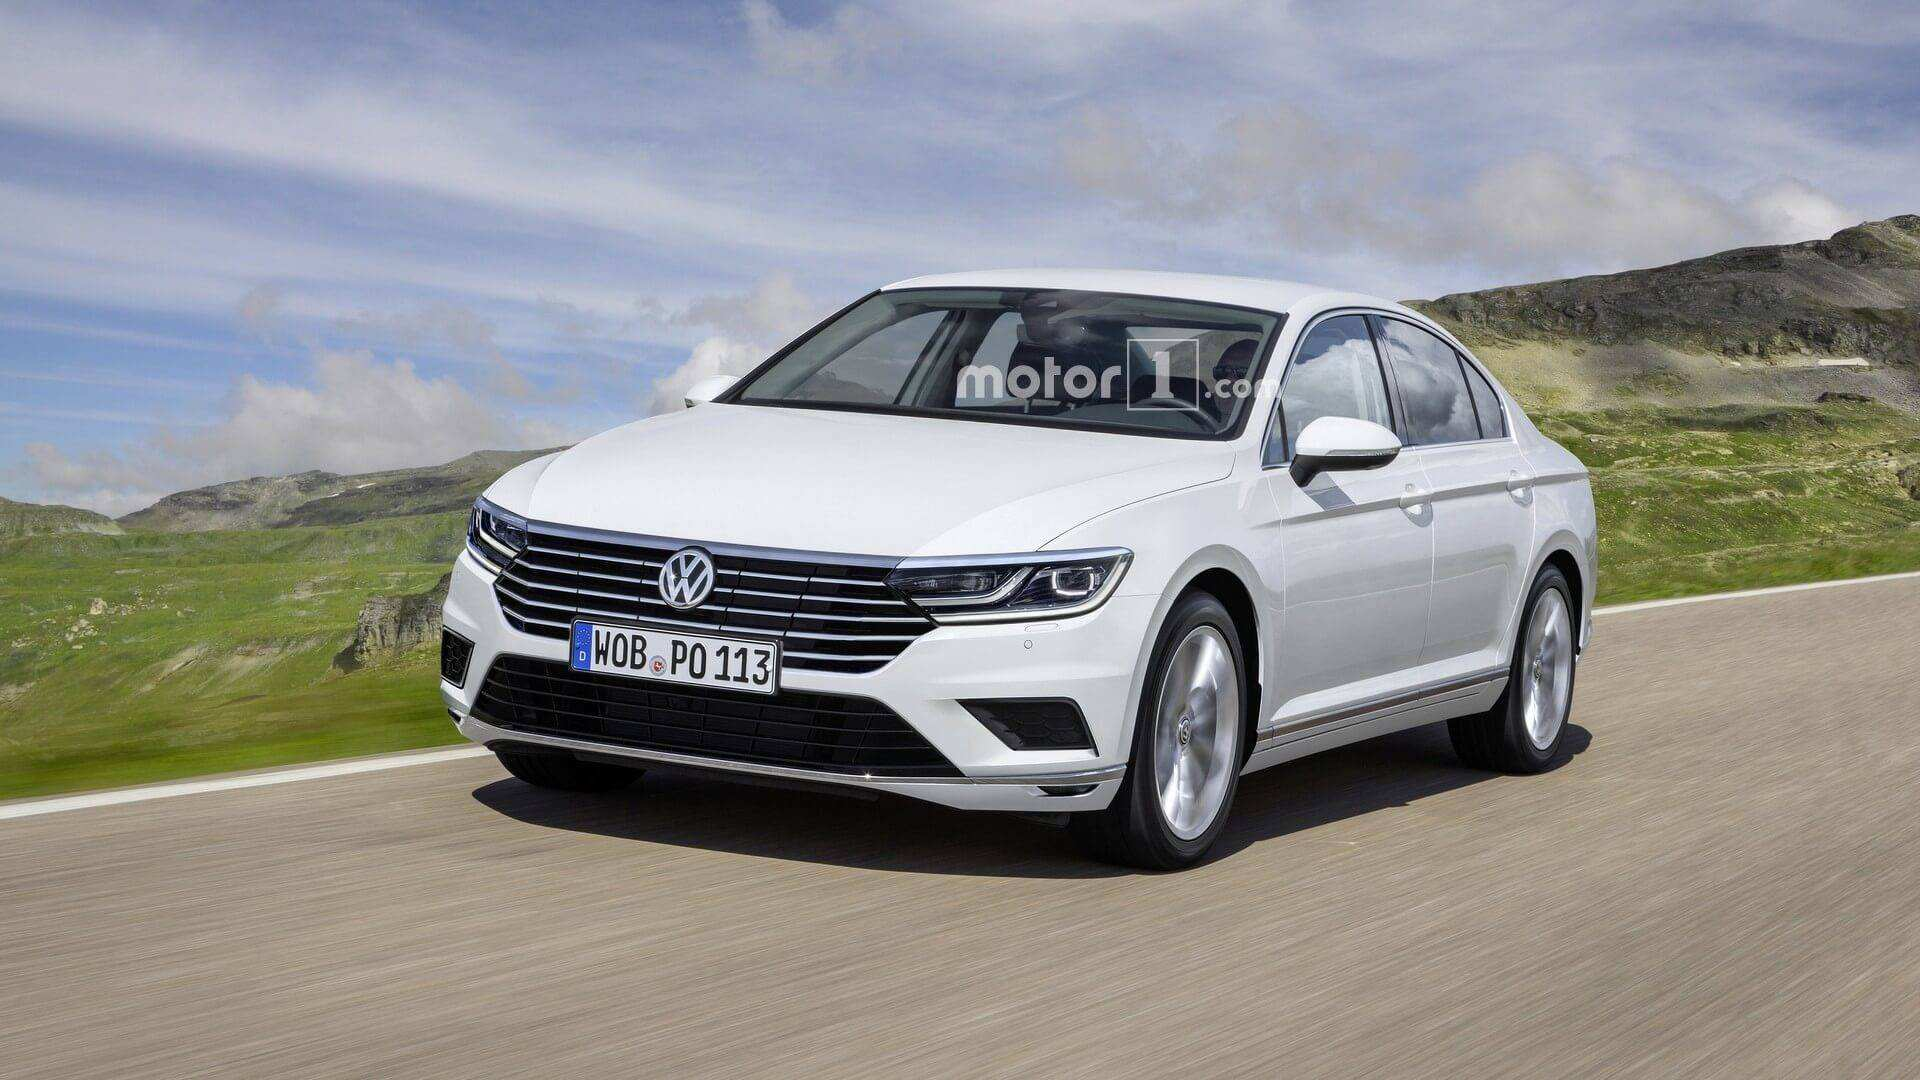 34 Great 2019 Volkswagen Cc Wallpaper for 2019 Volkswagen Cc